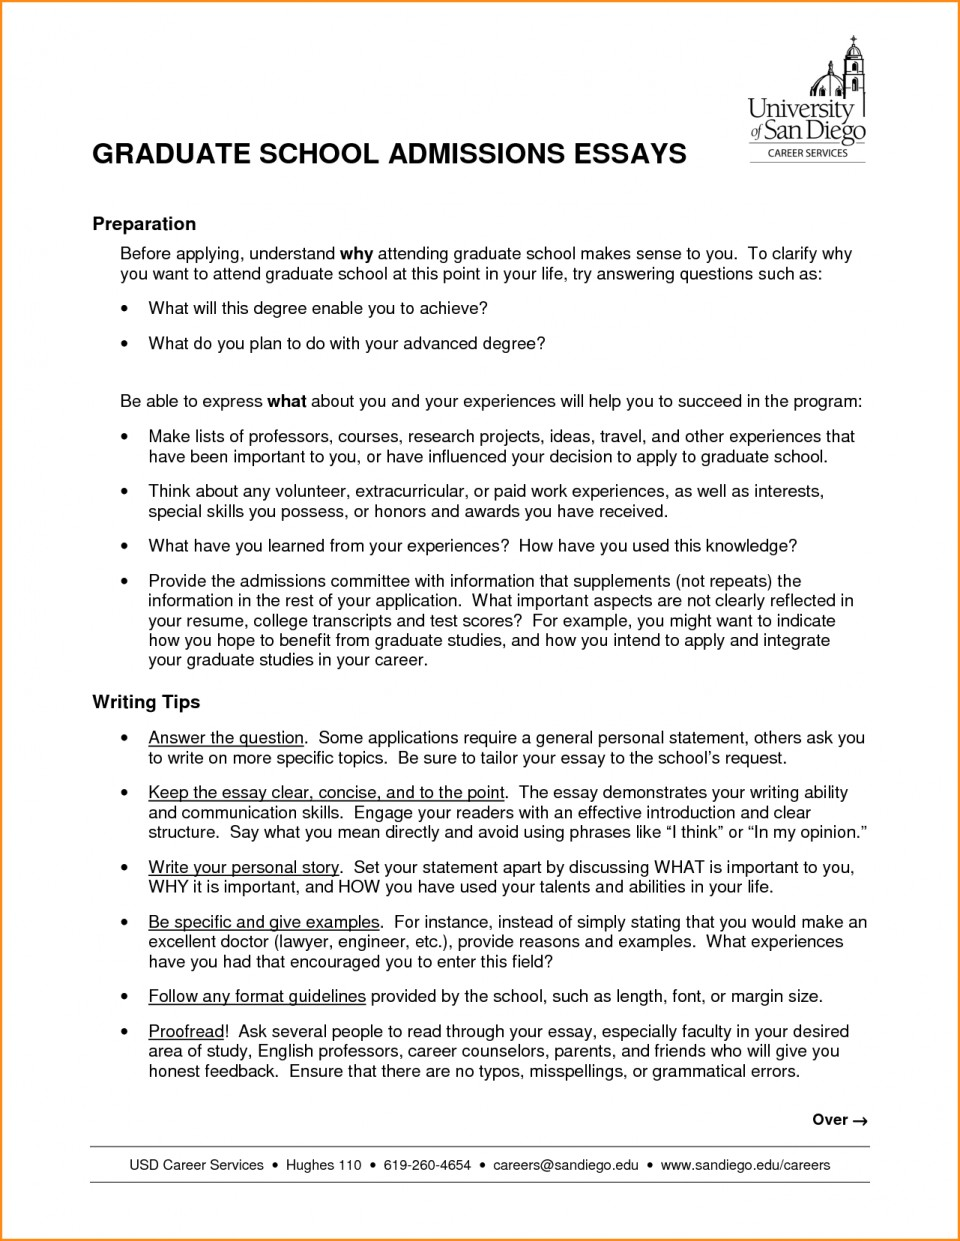 003 High School Admission Essay Sample Graduate Nursing Samples Admissions Examples Psychology Education Counseling Free Business Engineering Example Surprising For Personal 960